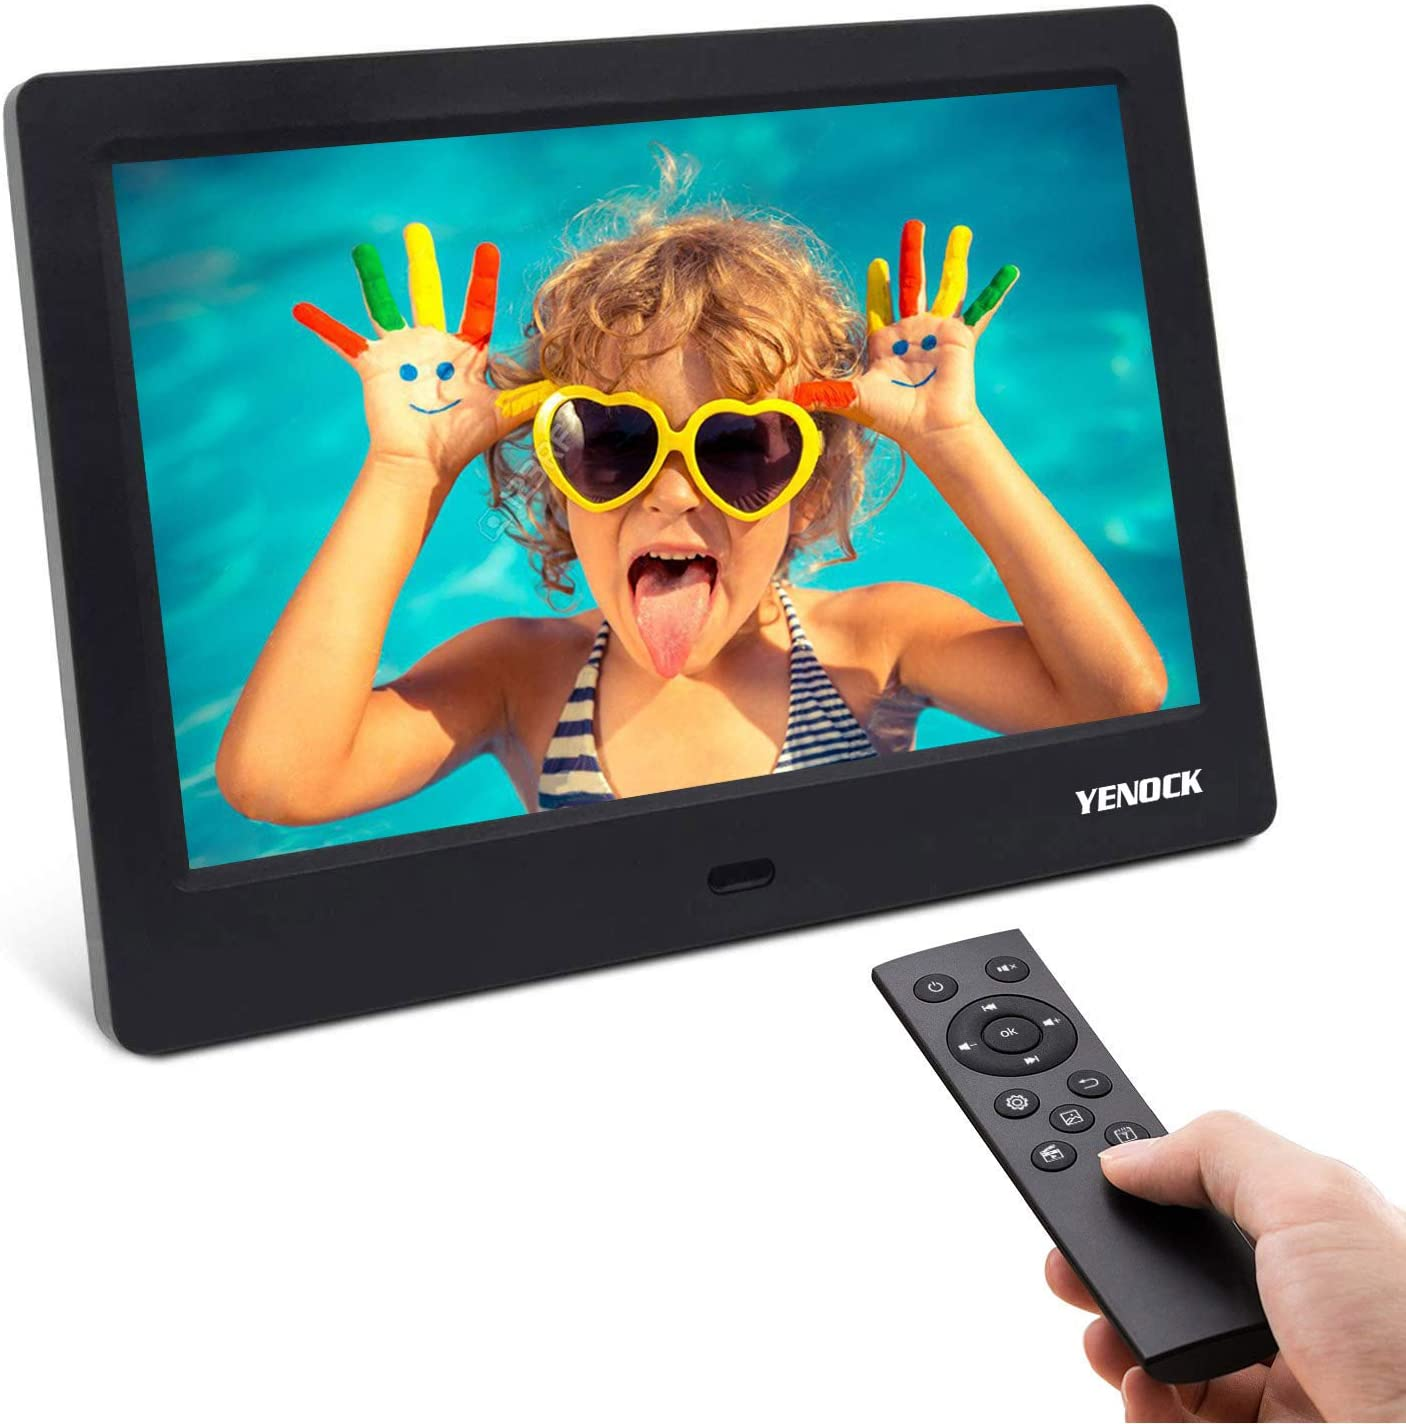 Xiejuanjuan Digital Picture Frame with IPS Display 7 Inch Digital Picture FrameMP3 Music 1080P HD Video 1024600 Pixels High Resolution Smart Electronic Frame Auto On//Off Timer Remote Control Included